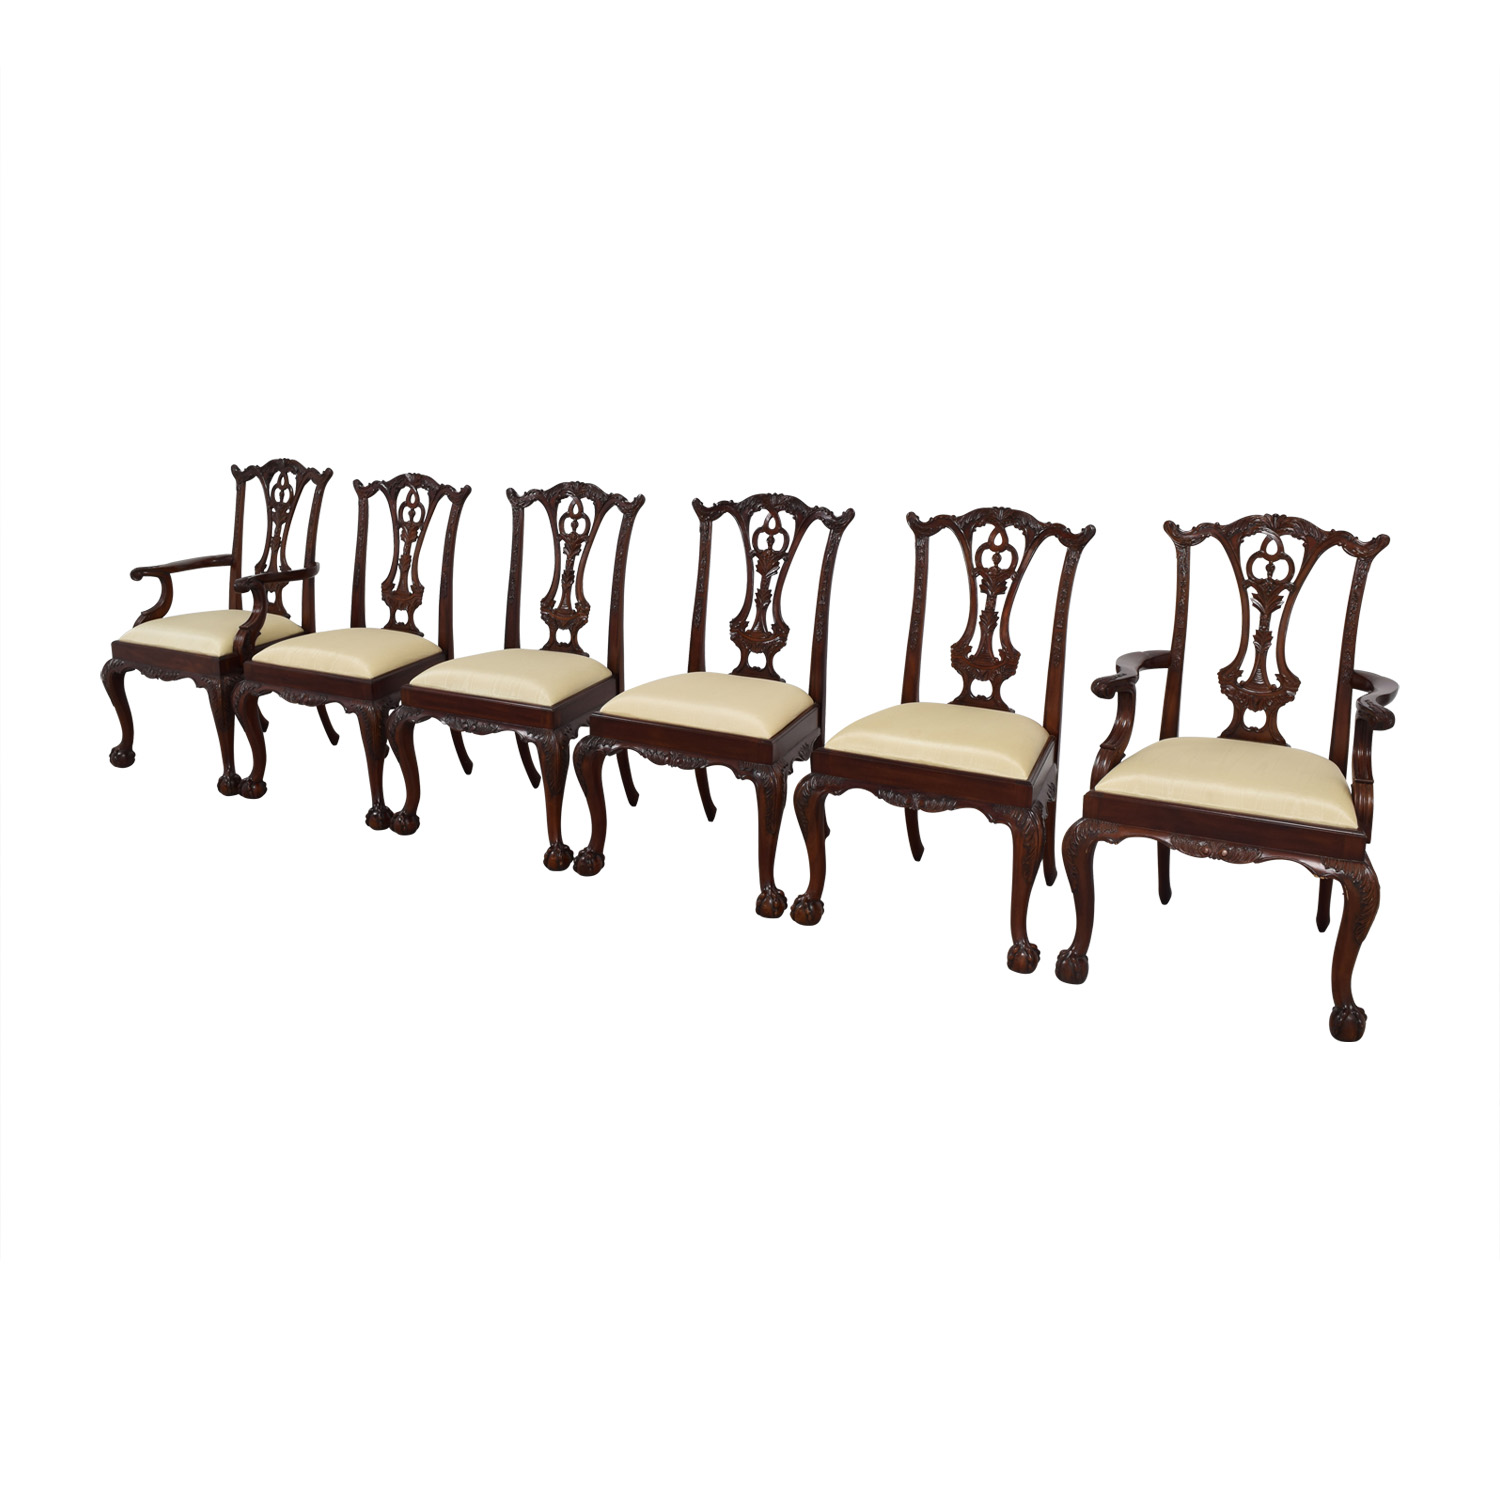 ... Maitland Smith Maitland Smith Hand Carved Mahogany Chairs On Sale ...